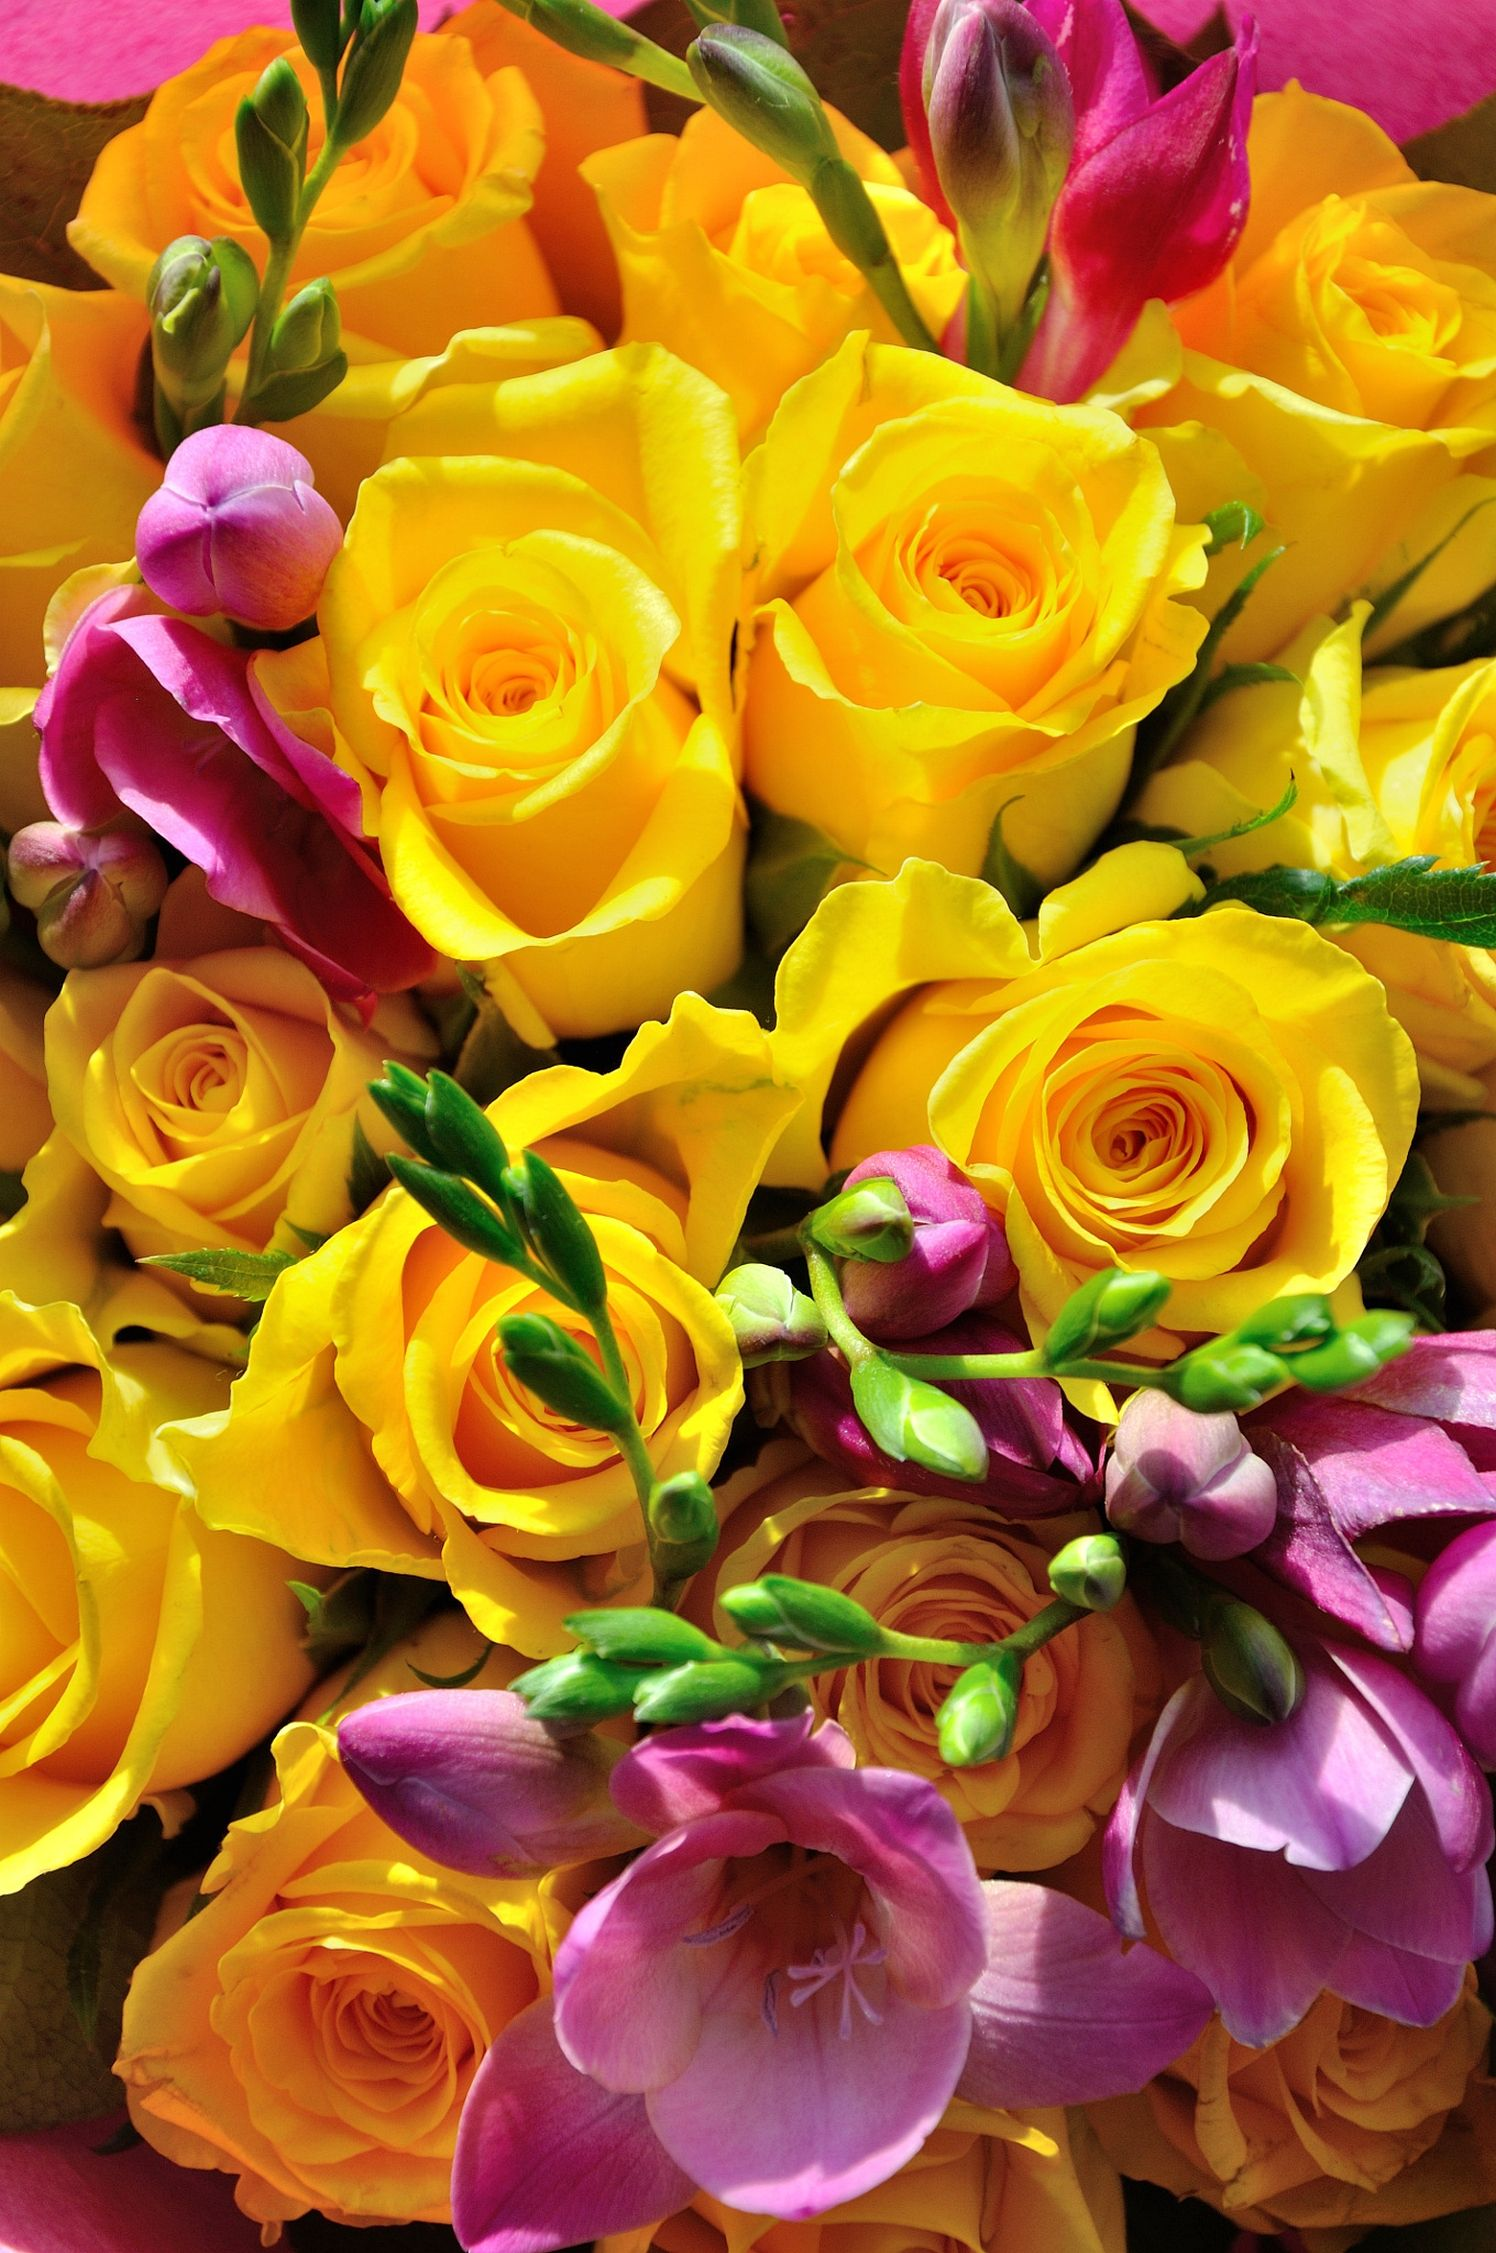 The most beautiful bouquets of yellow roses yellow roses out the front window izmirmasajfo